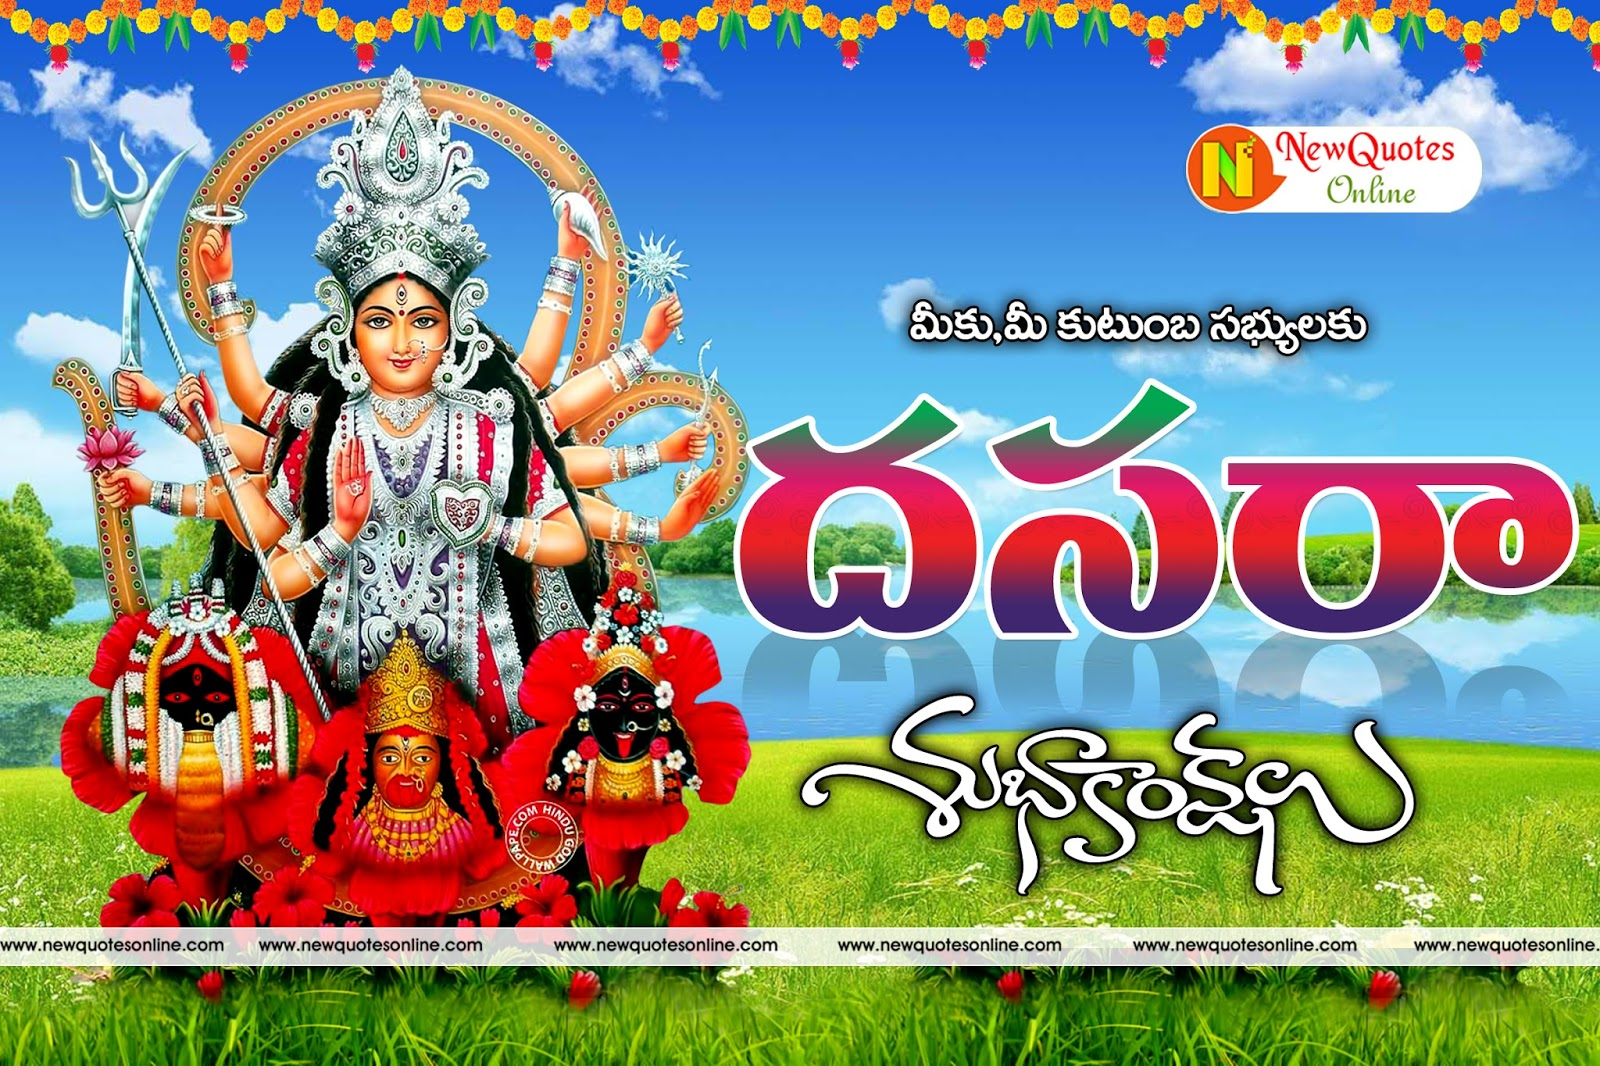 Happy Dussehra quotes greetings in telugu | Dasara wishes in telugu